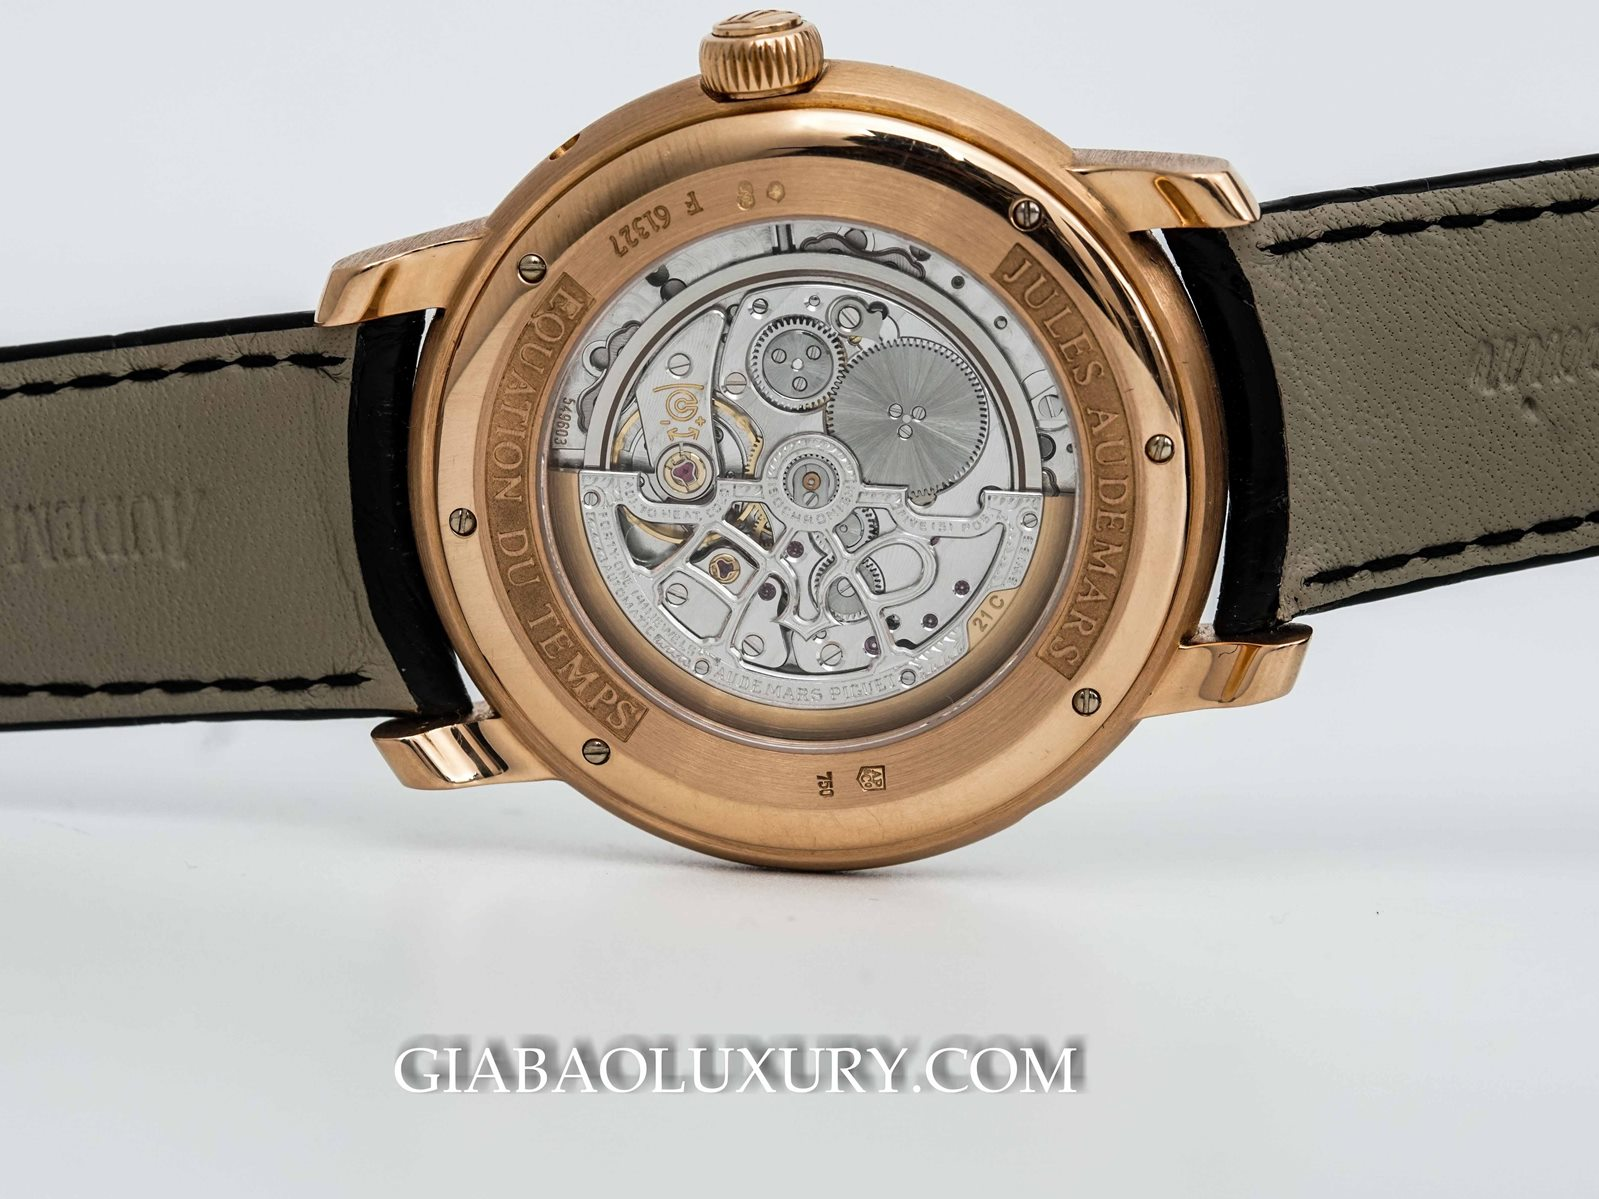 Đồng hồ Audemars Piguet Jules Audemars Equation of Time